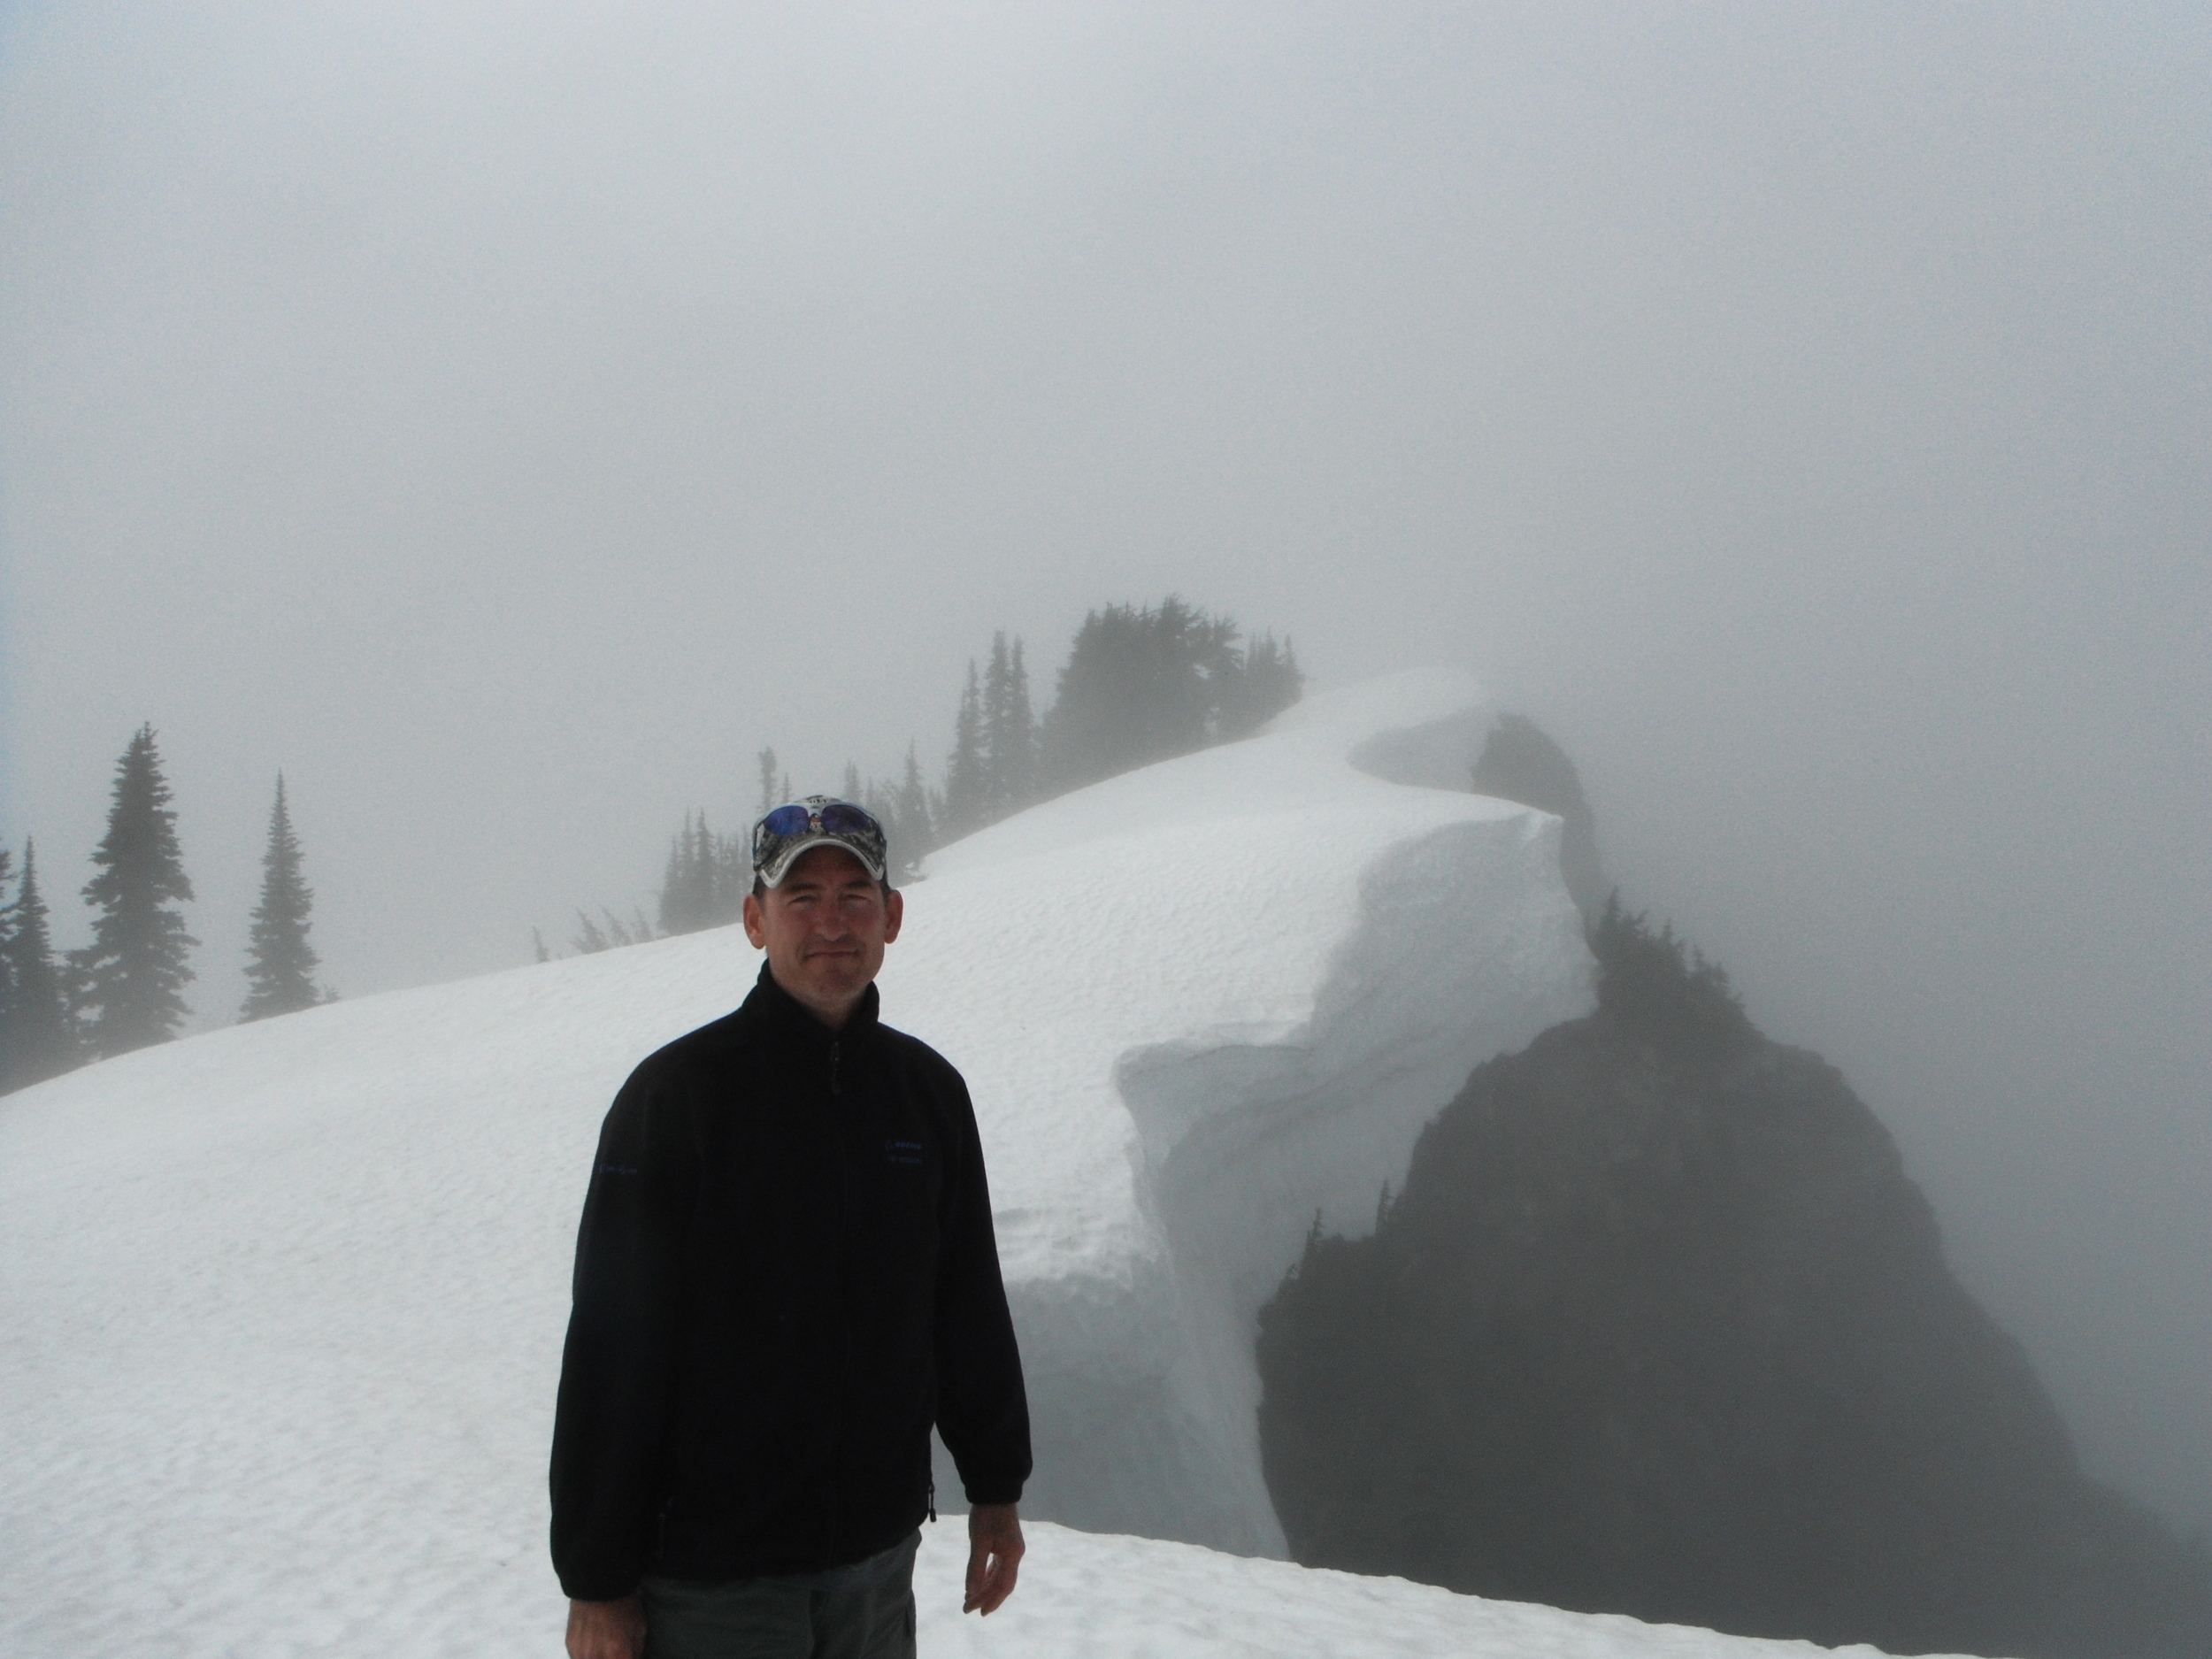 On top of Mount Dickerman